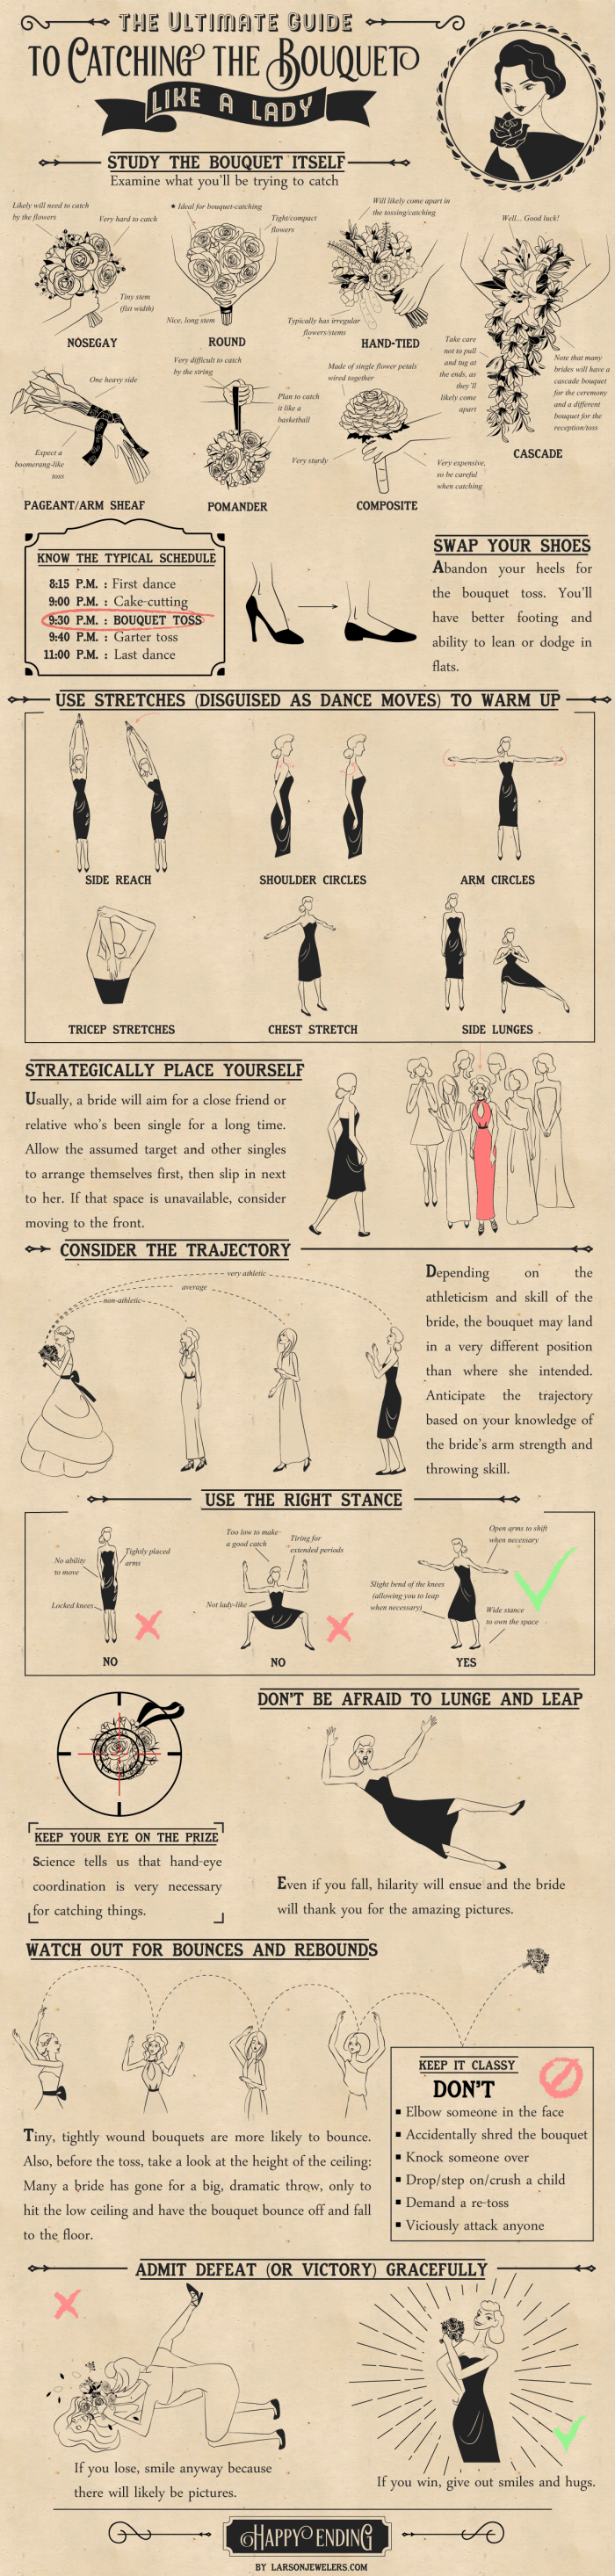 Ultimate Guide To catching the bouquet like a lady